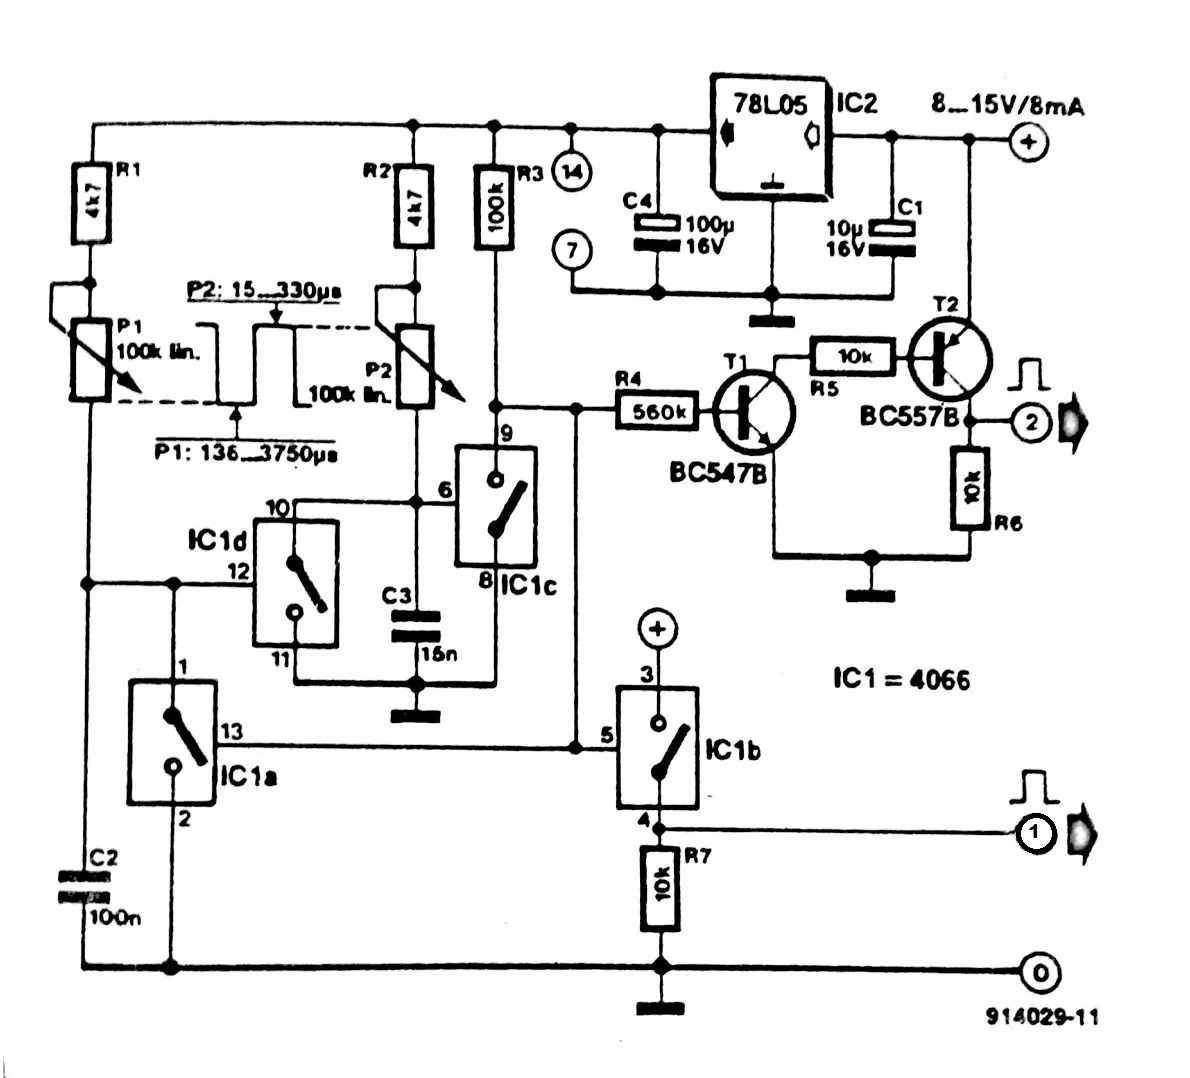 Timpte Hopper Wiring Diagram Free Download Mesmerizing M9540 Kubota Schematic Contemporary Best Together With 2015 Super Furthermore Wire